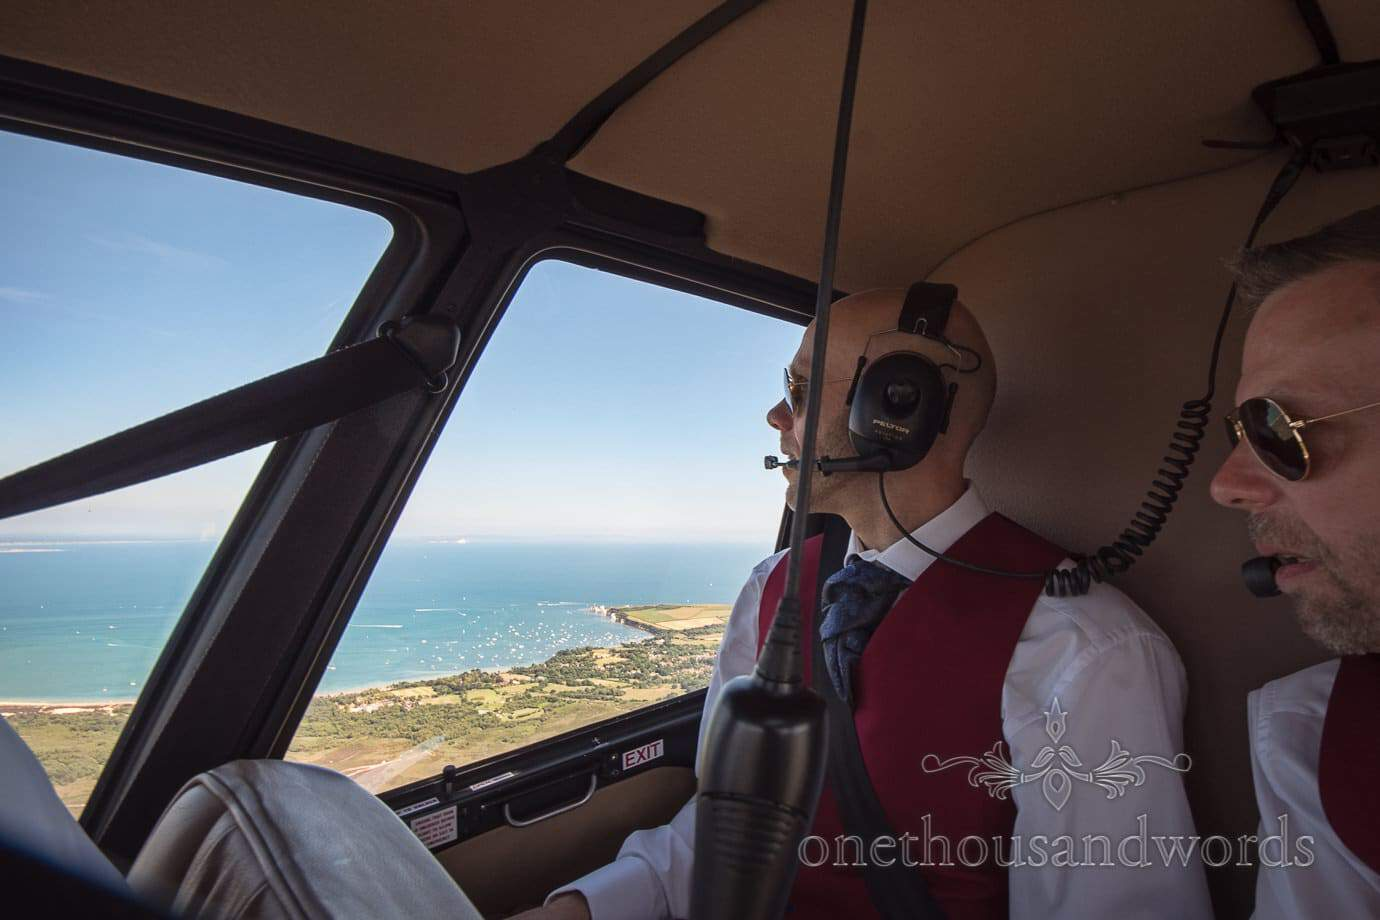 Grooms look over Dorset coastline during wedding helicopter ride